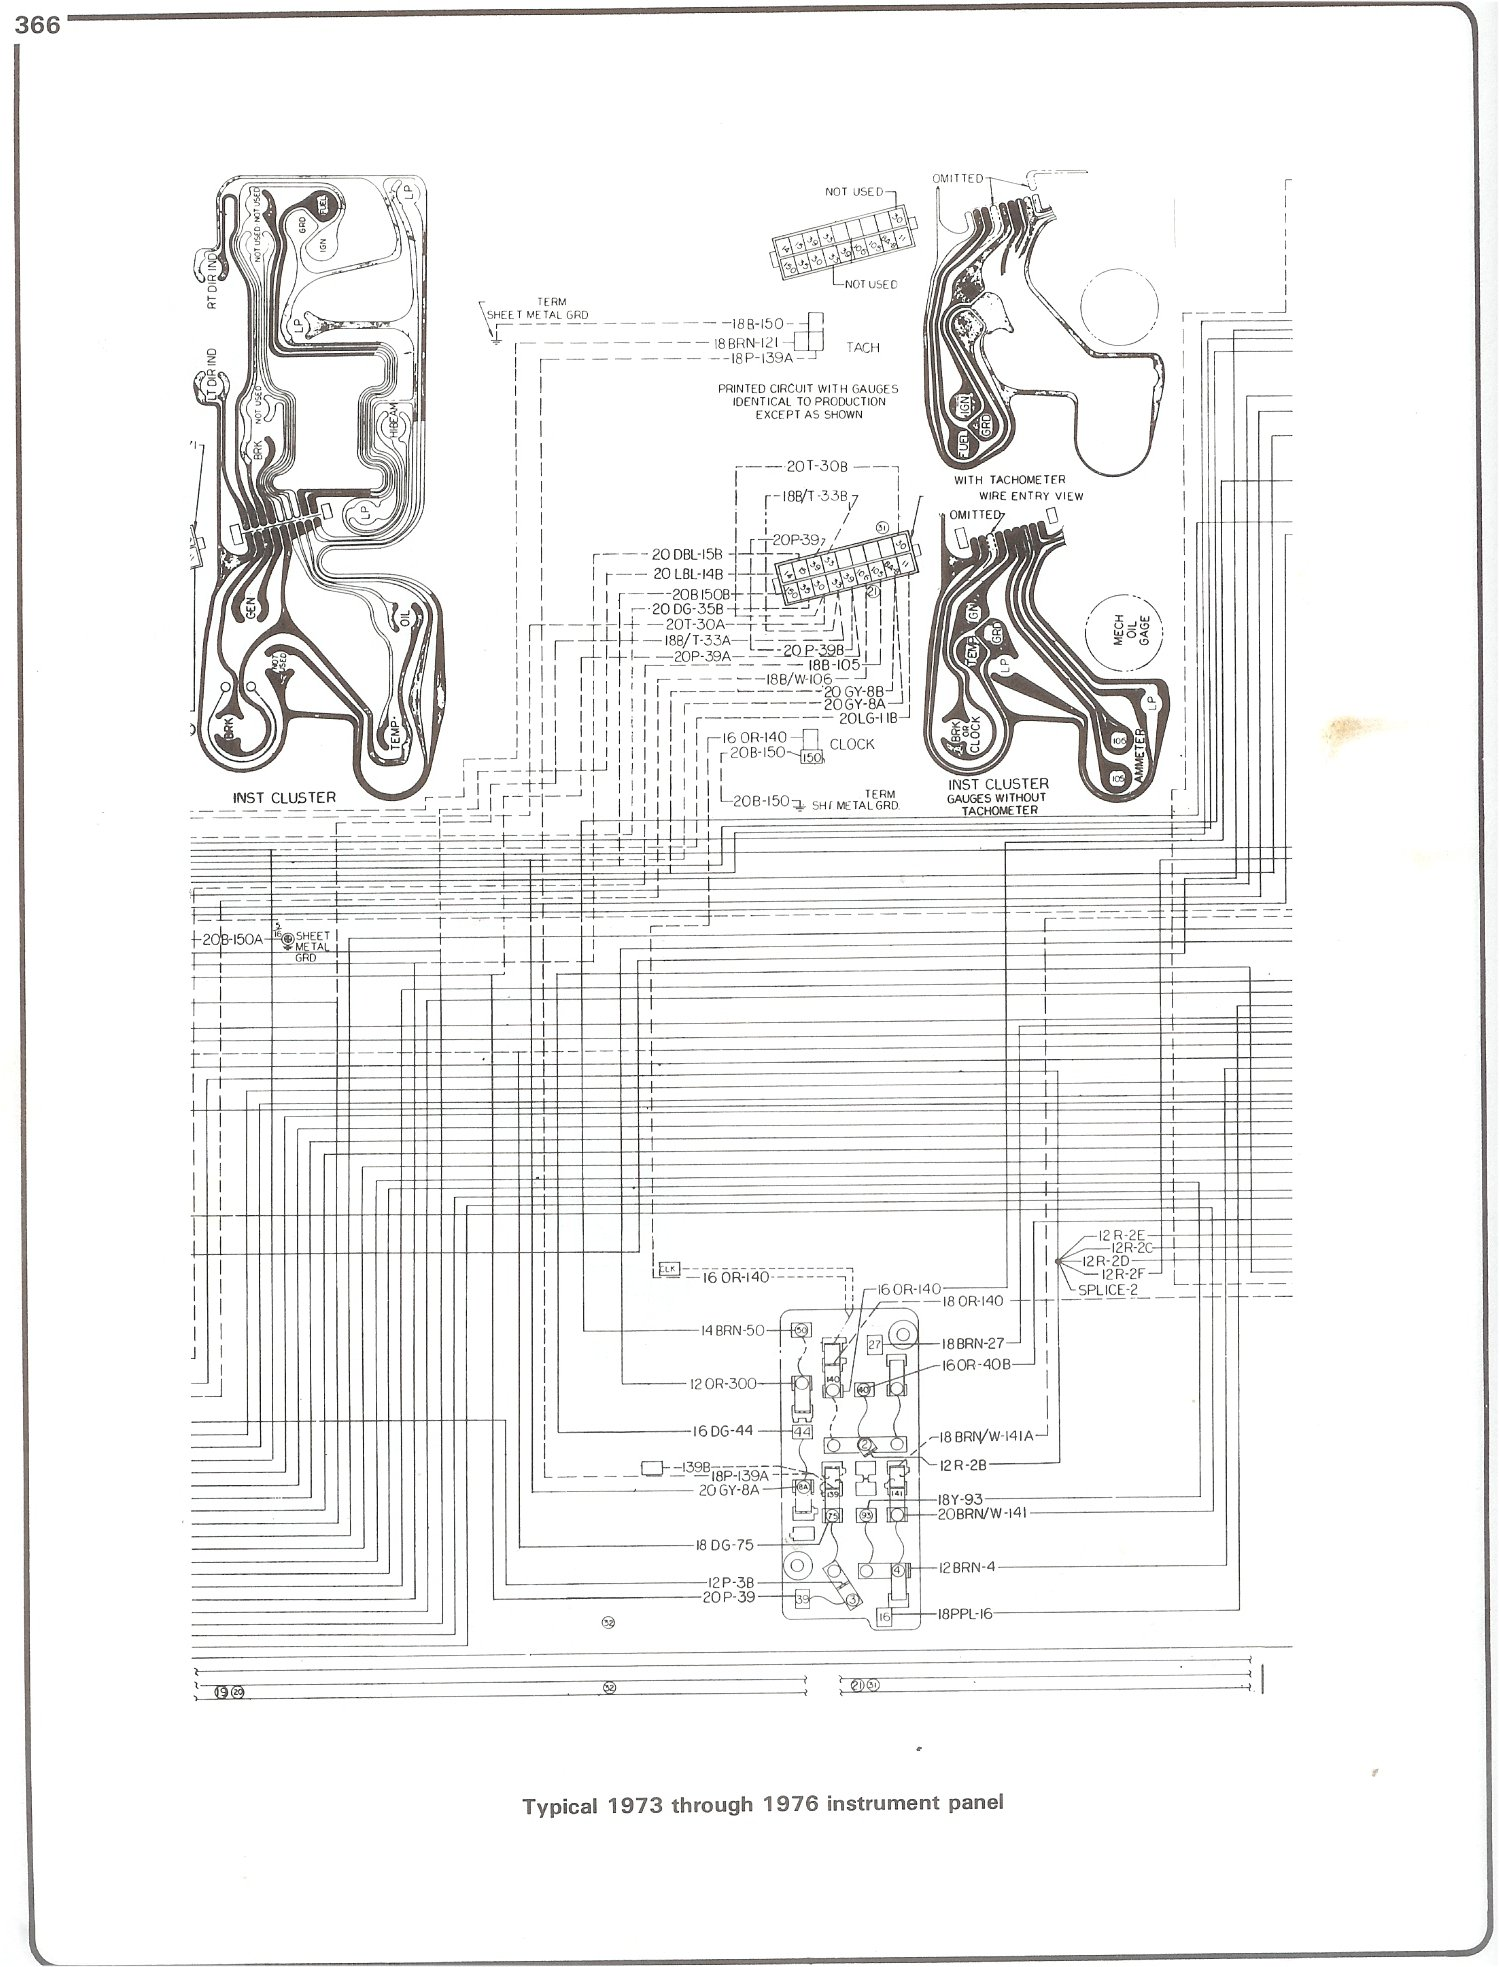 1973 Dodge Firewall Wiring Diagram Electricity 1974 Charger Diagrams Complete 73 87 Rh Forum 87chevytrucks Com Dart Turn Signal